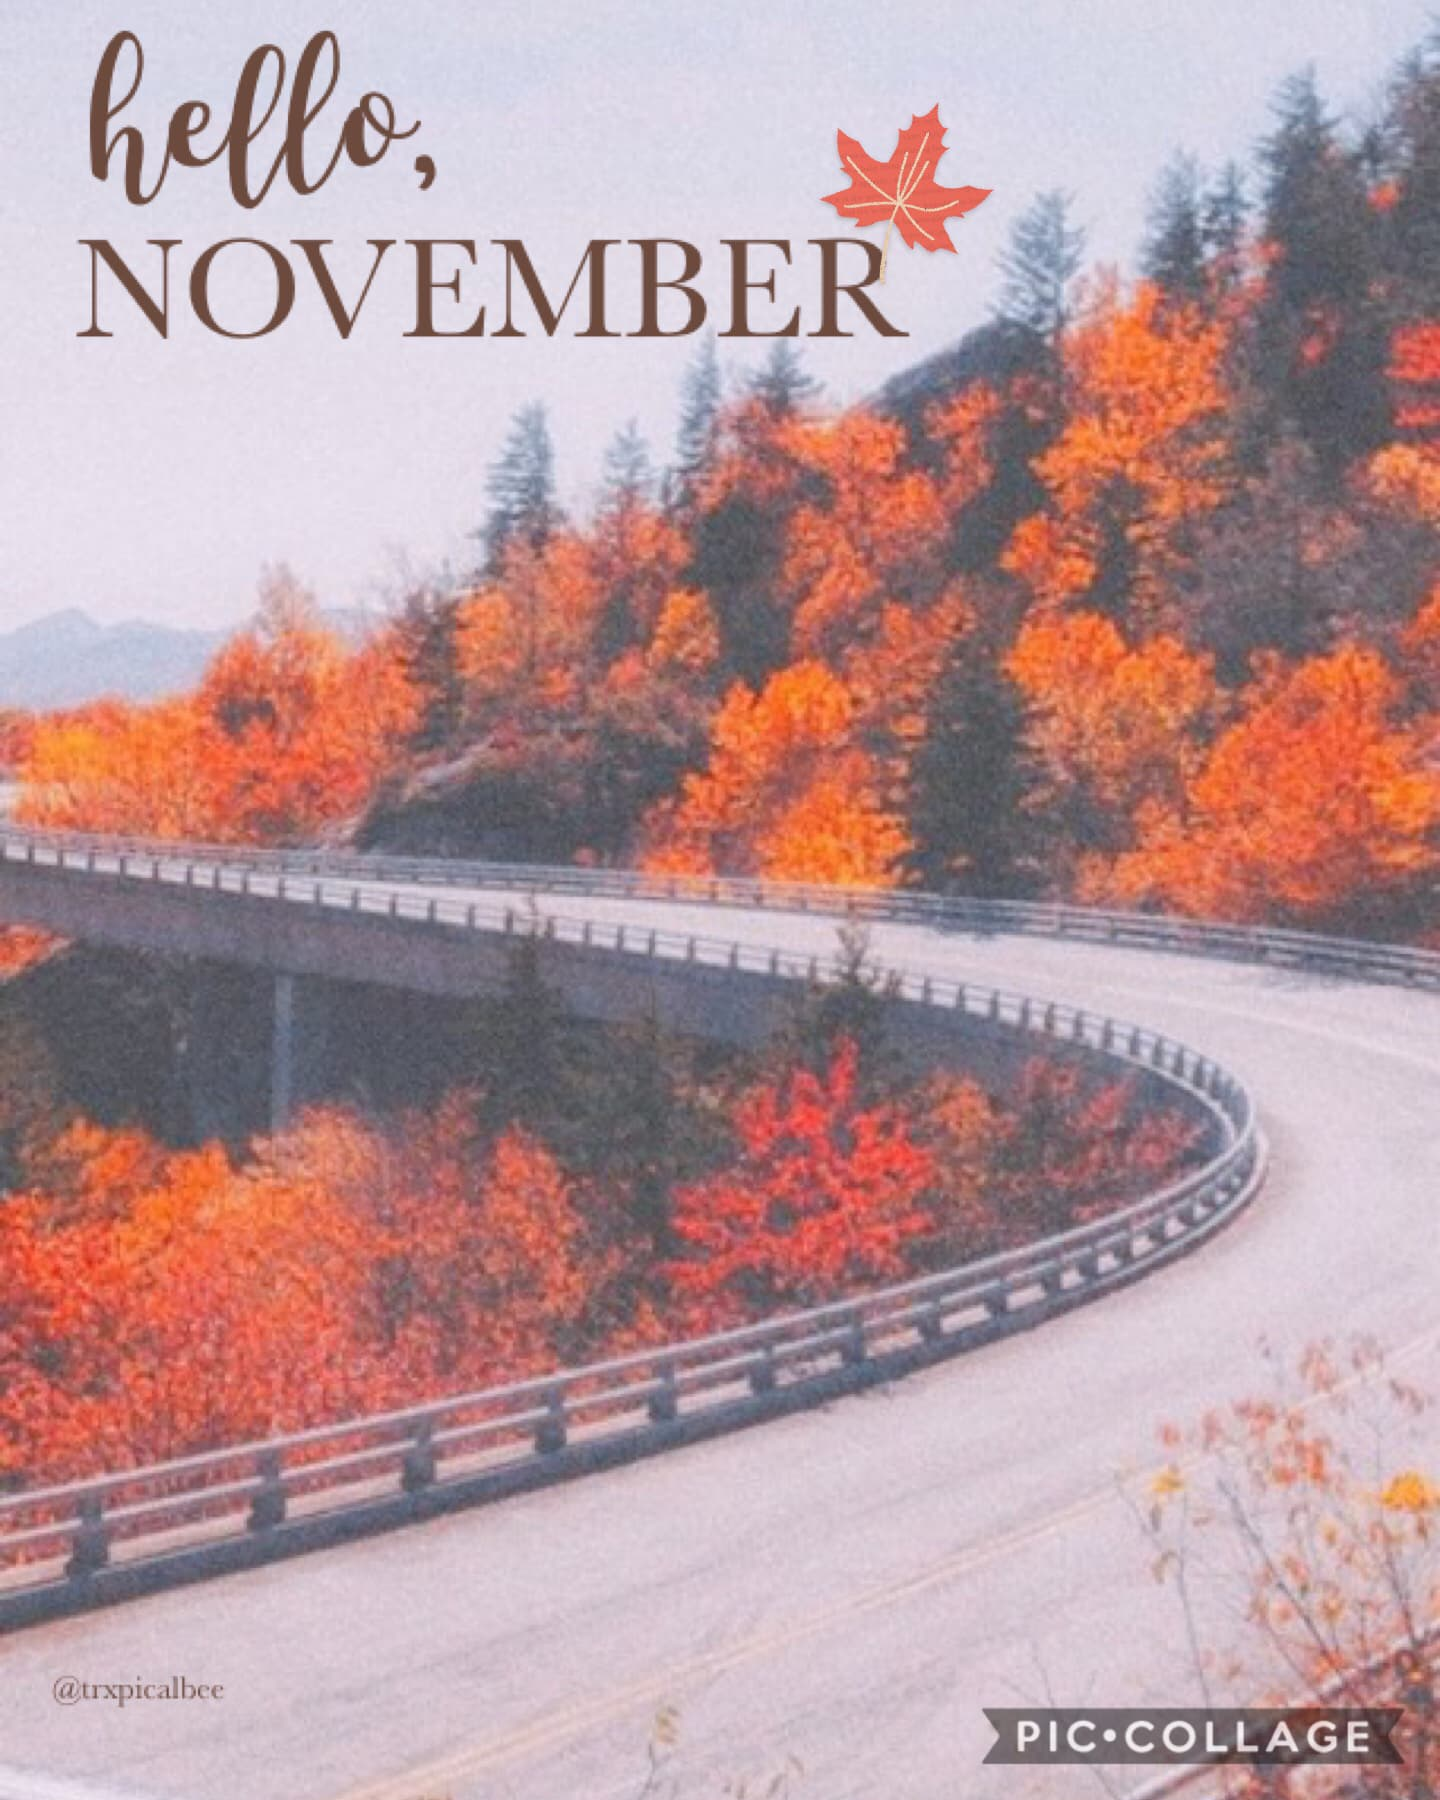 hello, november! 🍂 it's almost christmas! :))  [looks like i'm back for a bit! ✨]